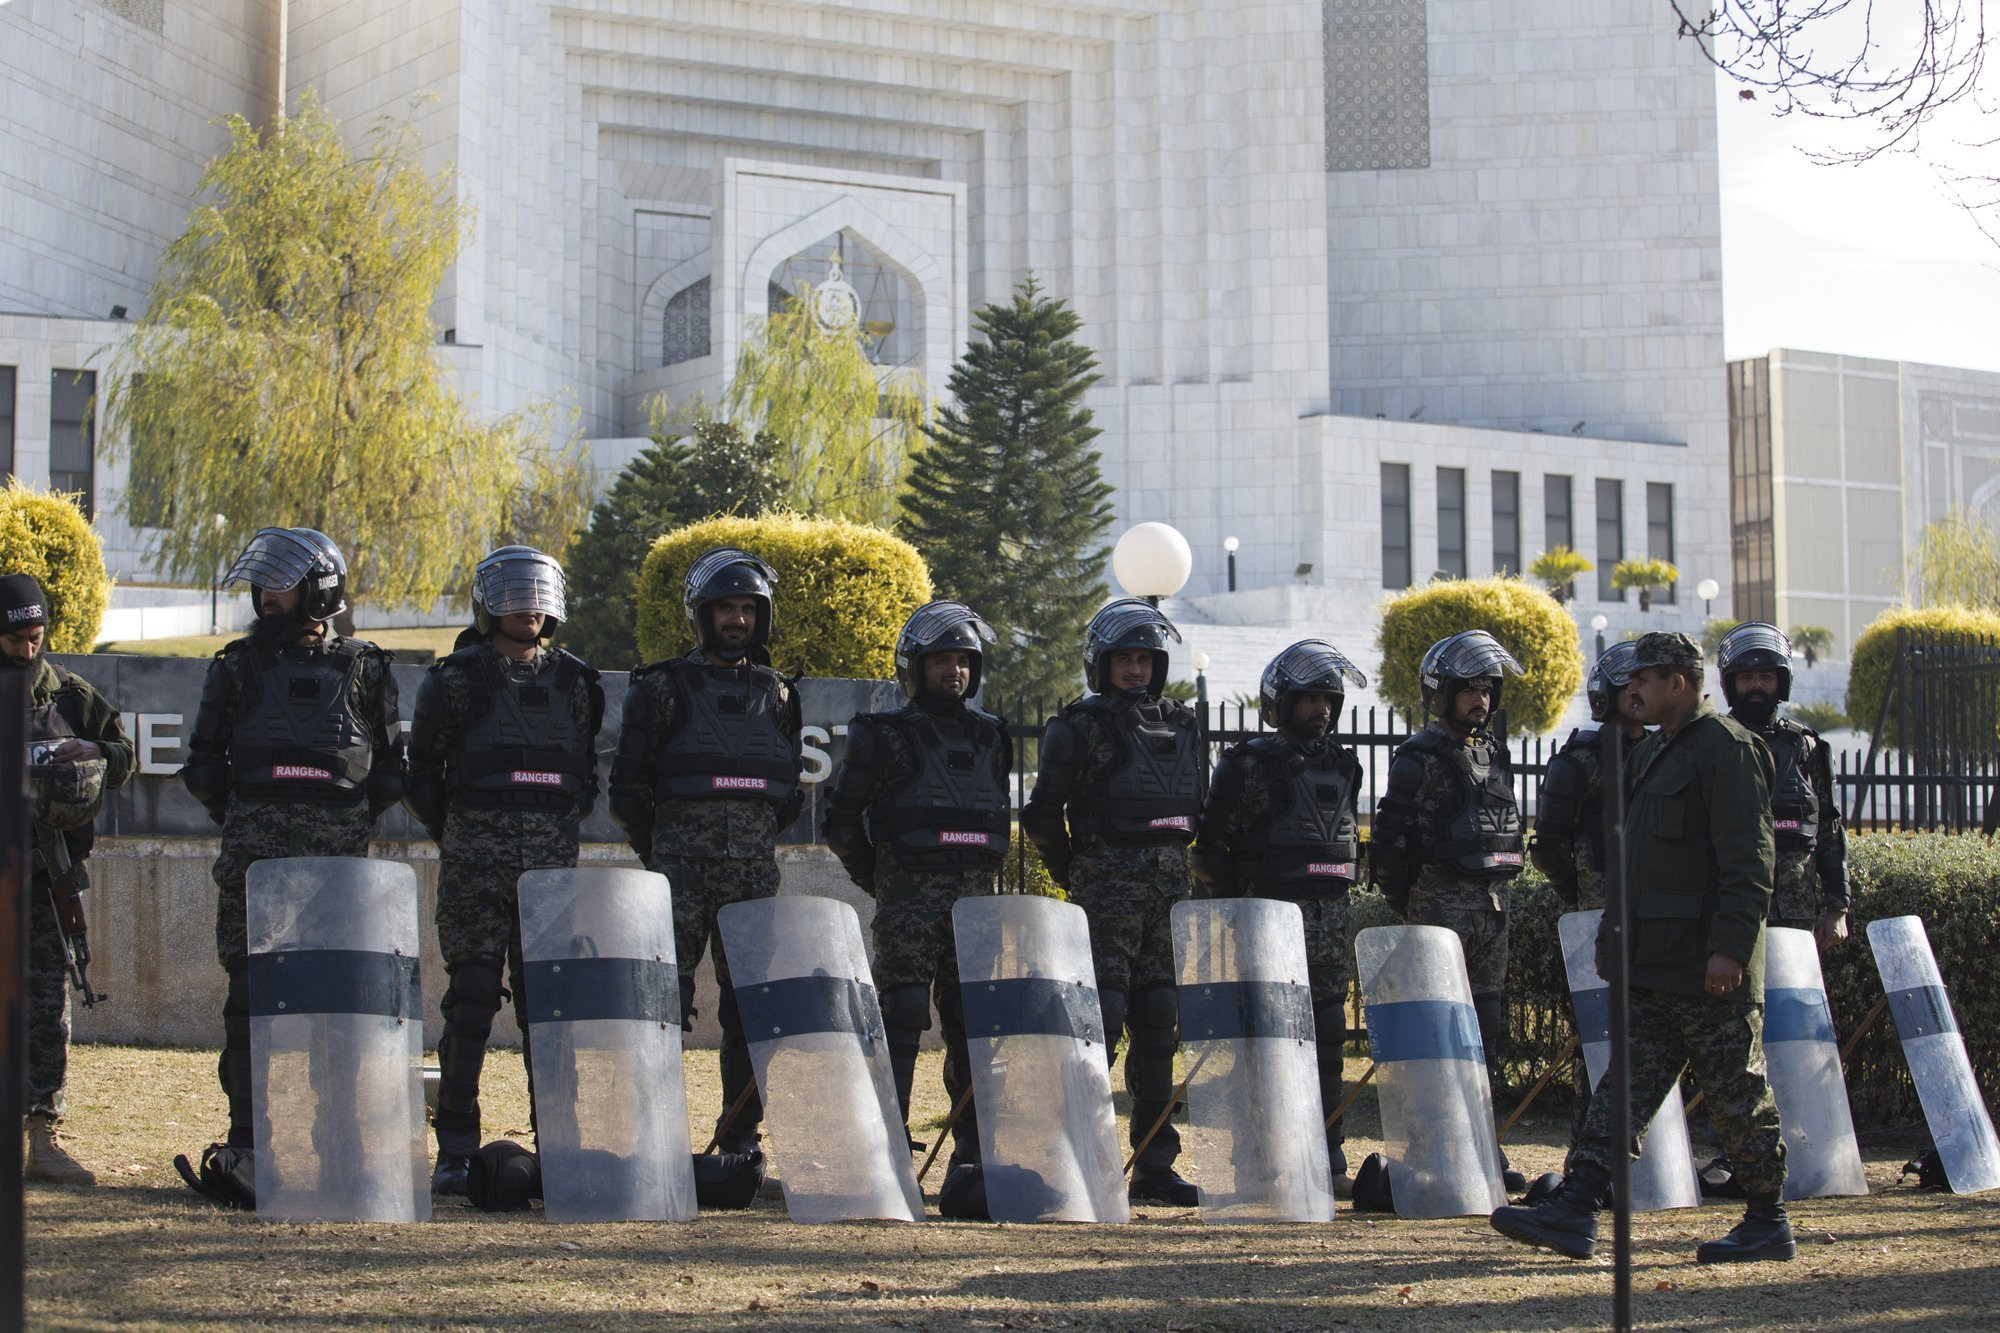 Law enforcers surround the Supreme Court building on Tuesday as security is beefed up during the hearing of petition against Aasia Bibi's acquittal. — AP